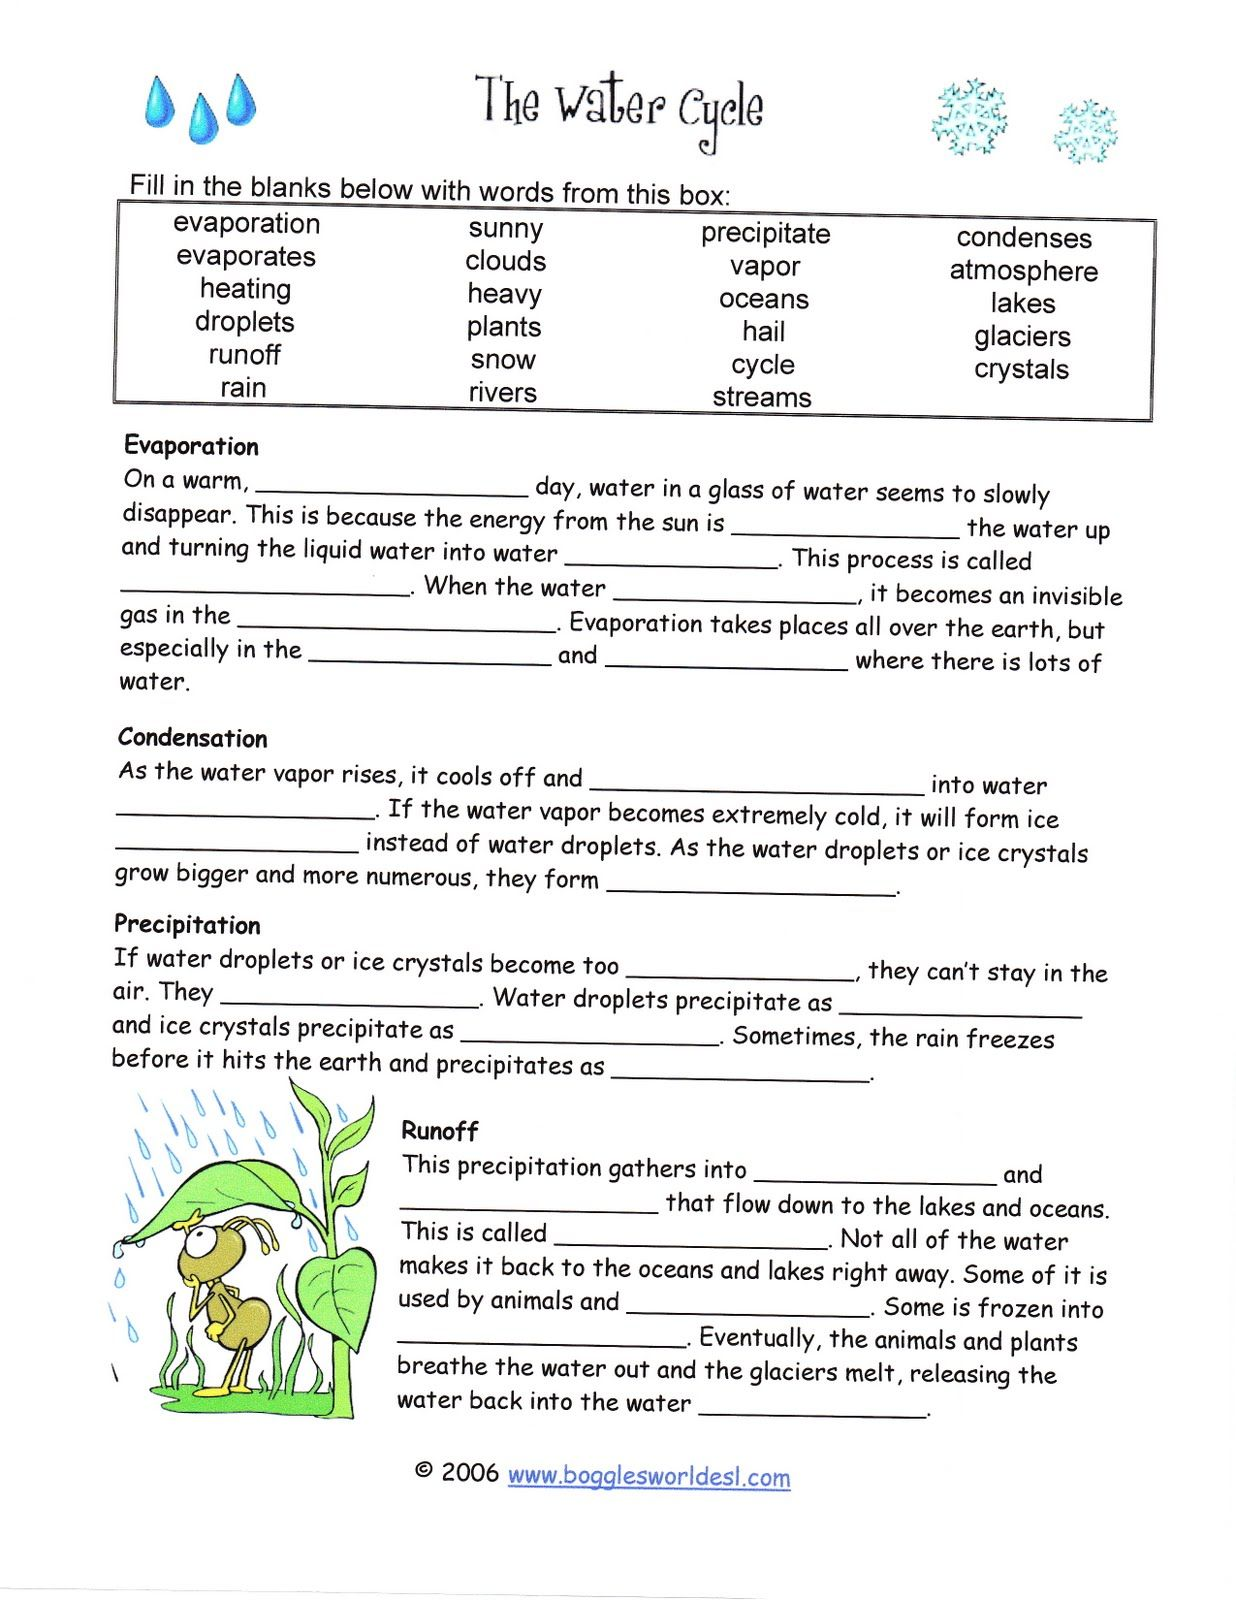 The Water Cycle Worksheet Answers Free Worksheets Library